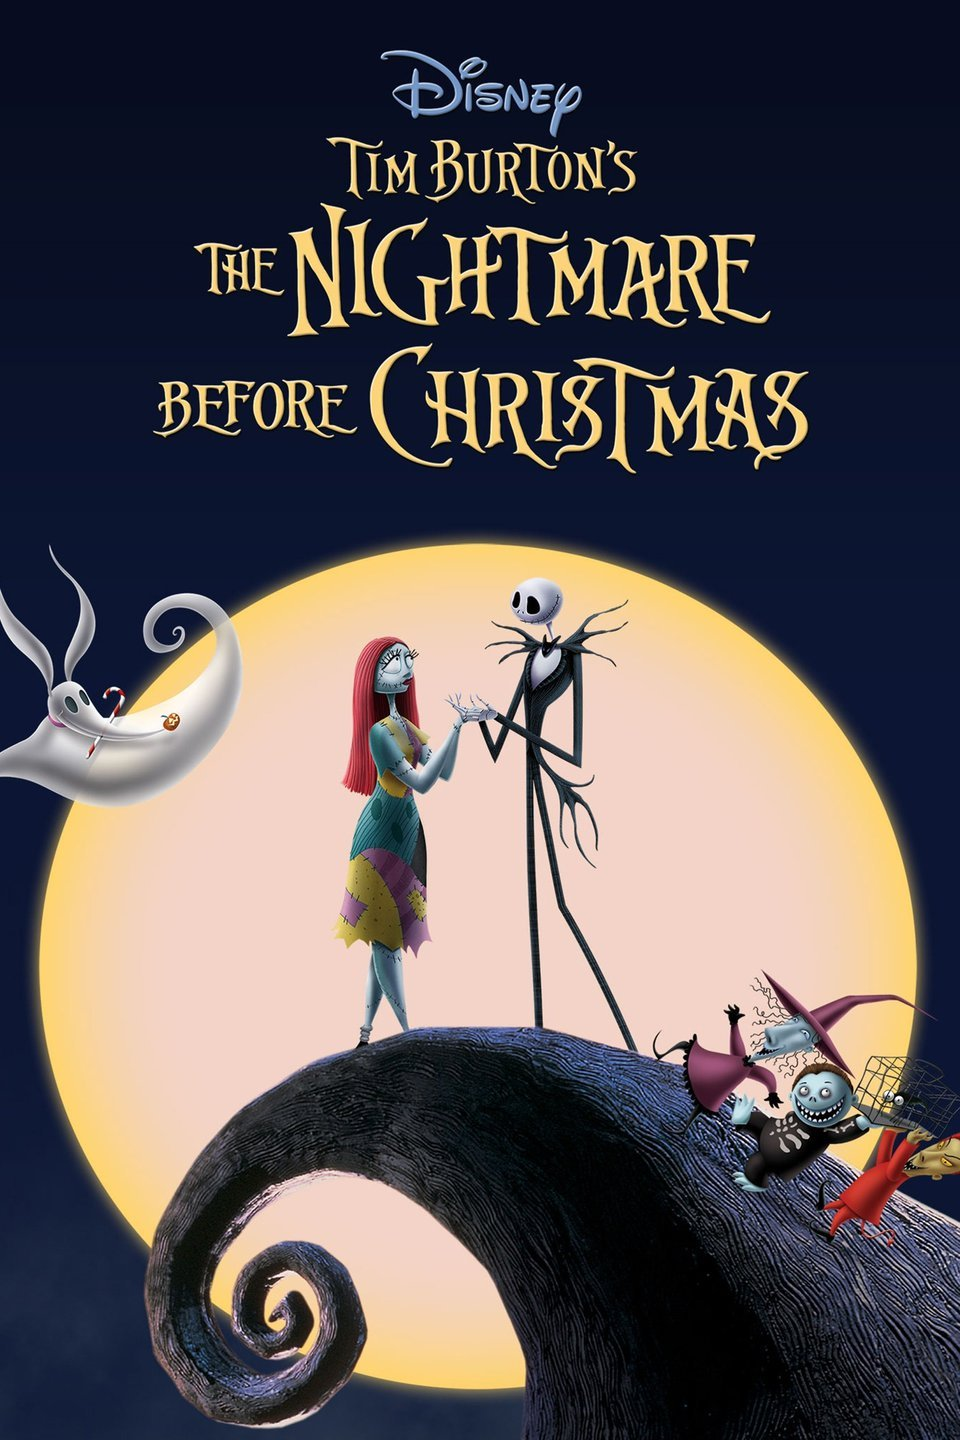 "The Nightmare Before Christmas. - Christmas film or Halloween film? Either way, this twisted tale from the mind of Tim Burton will appeal to your ""too cool for Christmas movies"" teens. Before long you'll all be cheering for Jack Skellington to take over Christmas. While the stop-motion effects might feel a little dated (and that's still part of the charm) the film's off-beat nature is a refreshing addition to the Christmas roster, packing charm with just the right amount of creepy to make this a must watch."